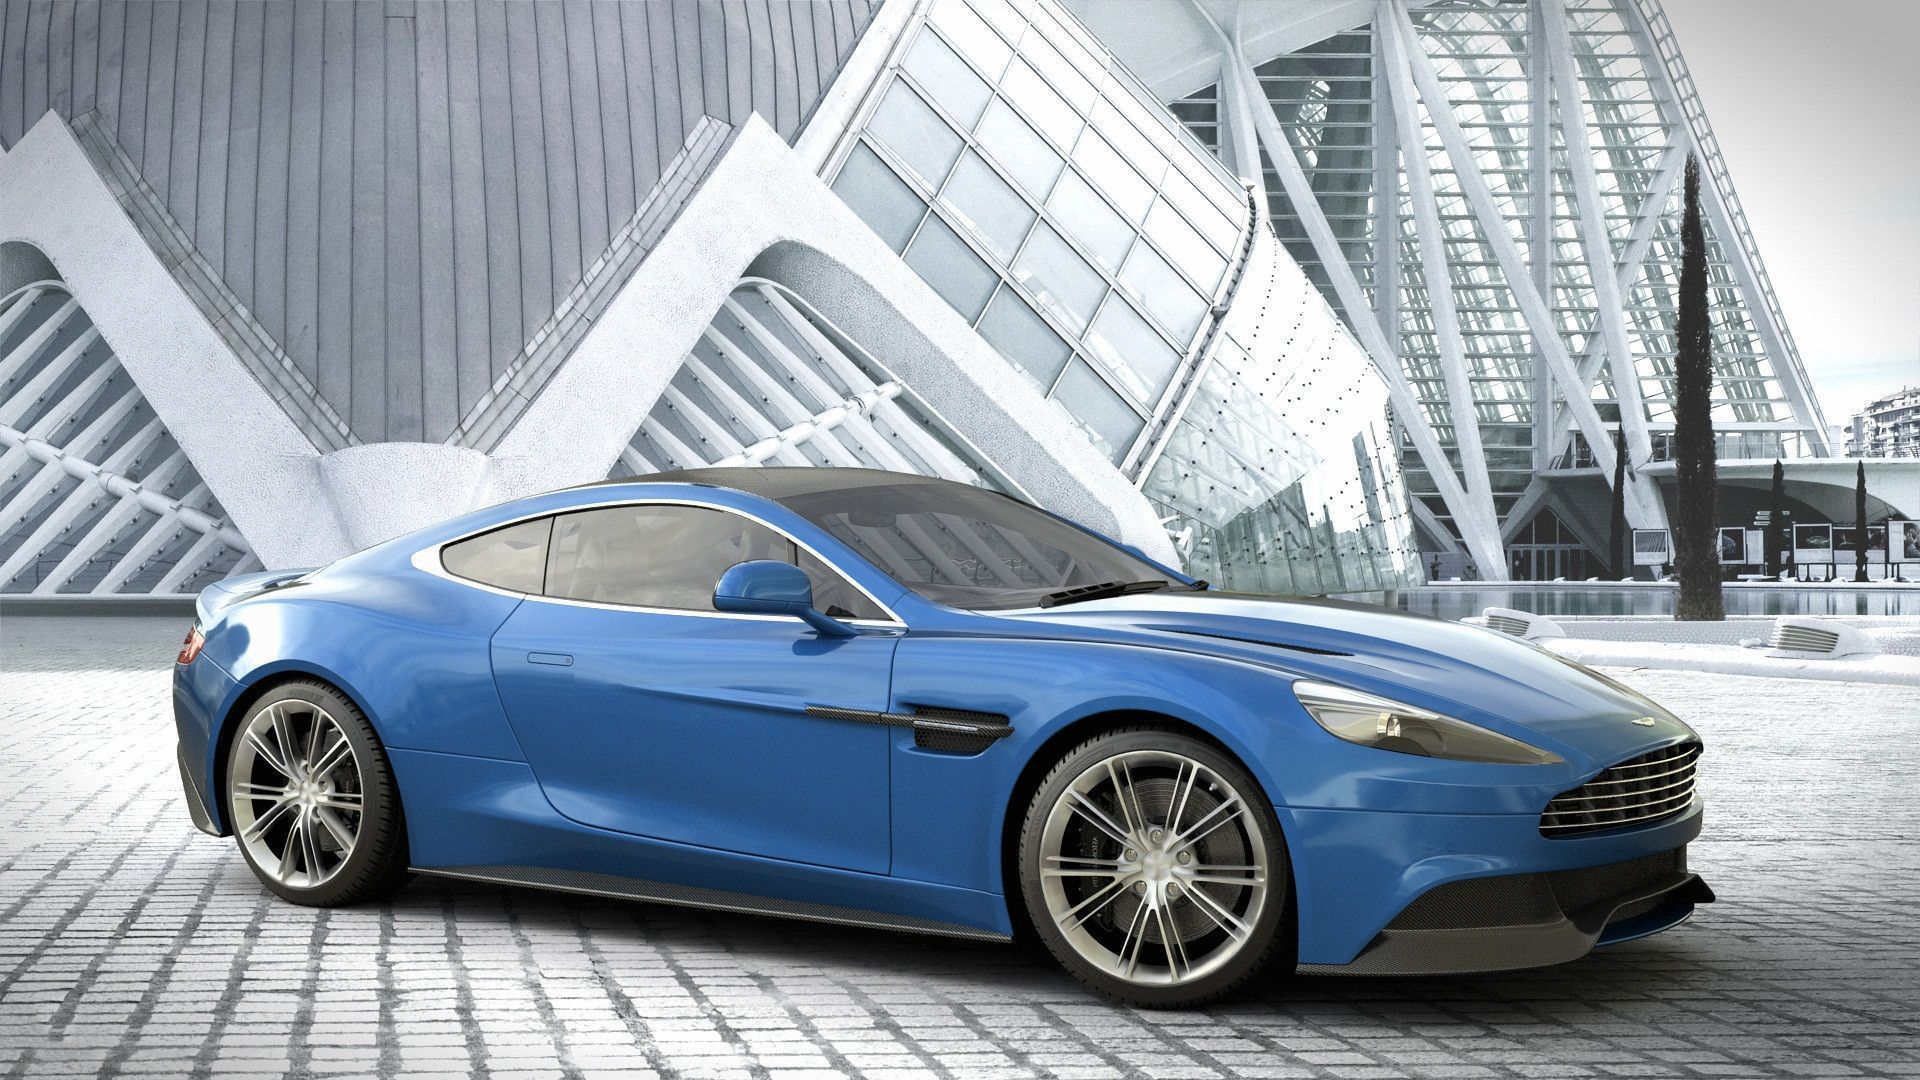 Aston Martin Vanquish Wallpaper Images #0CW | Cars | Pinterest | Aston  Martin, Wallpaper And Mac Wallpaper